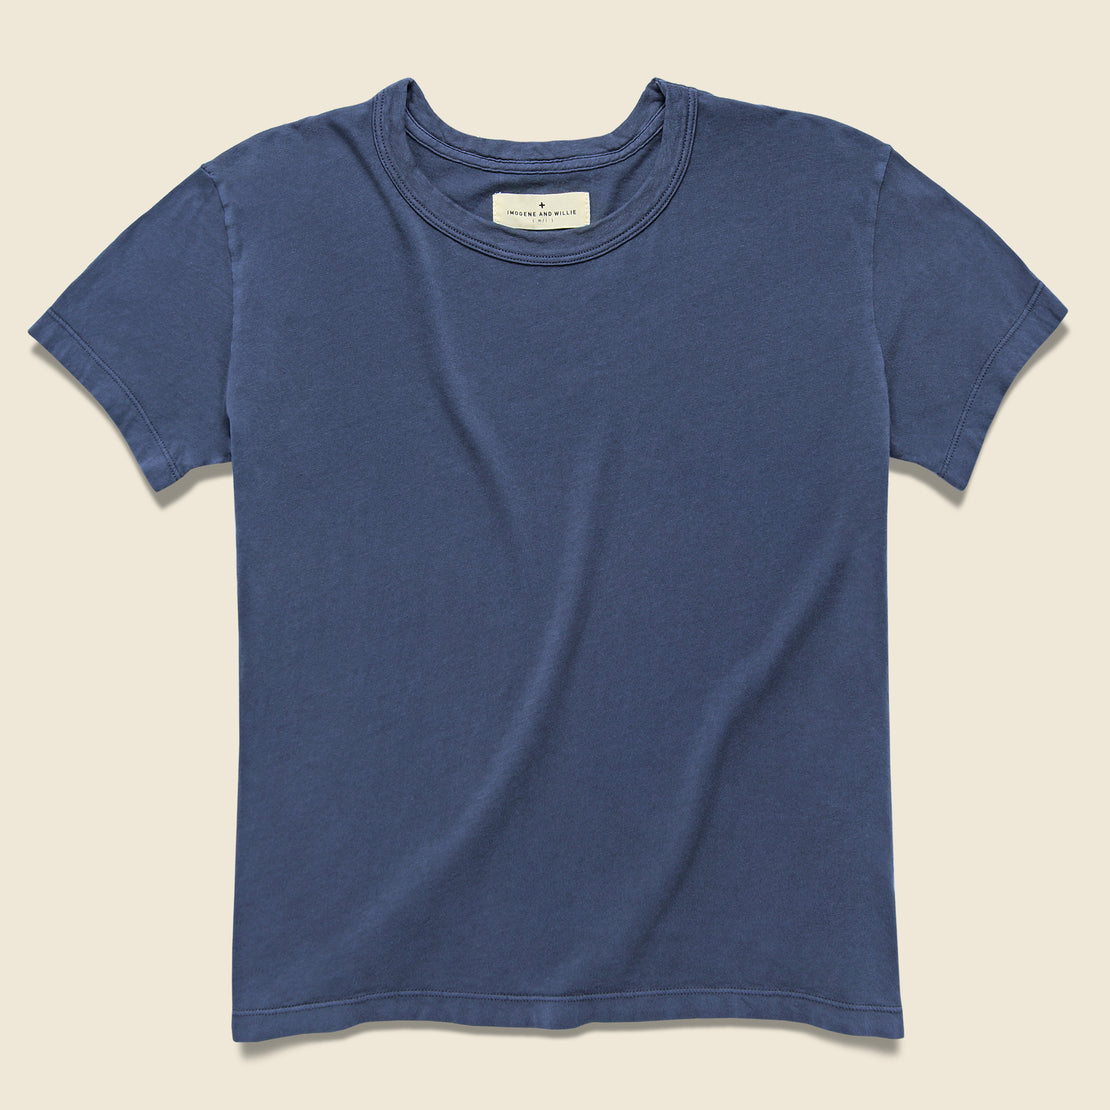 Imogene + Willie Drop Tee - Faded Blue